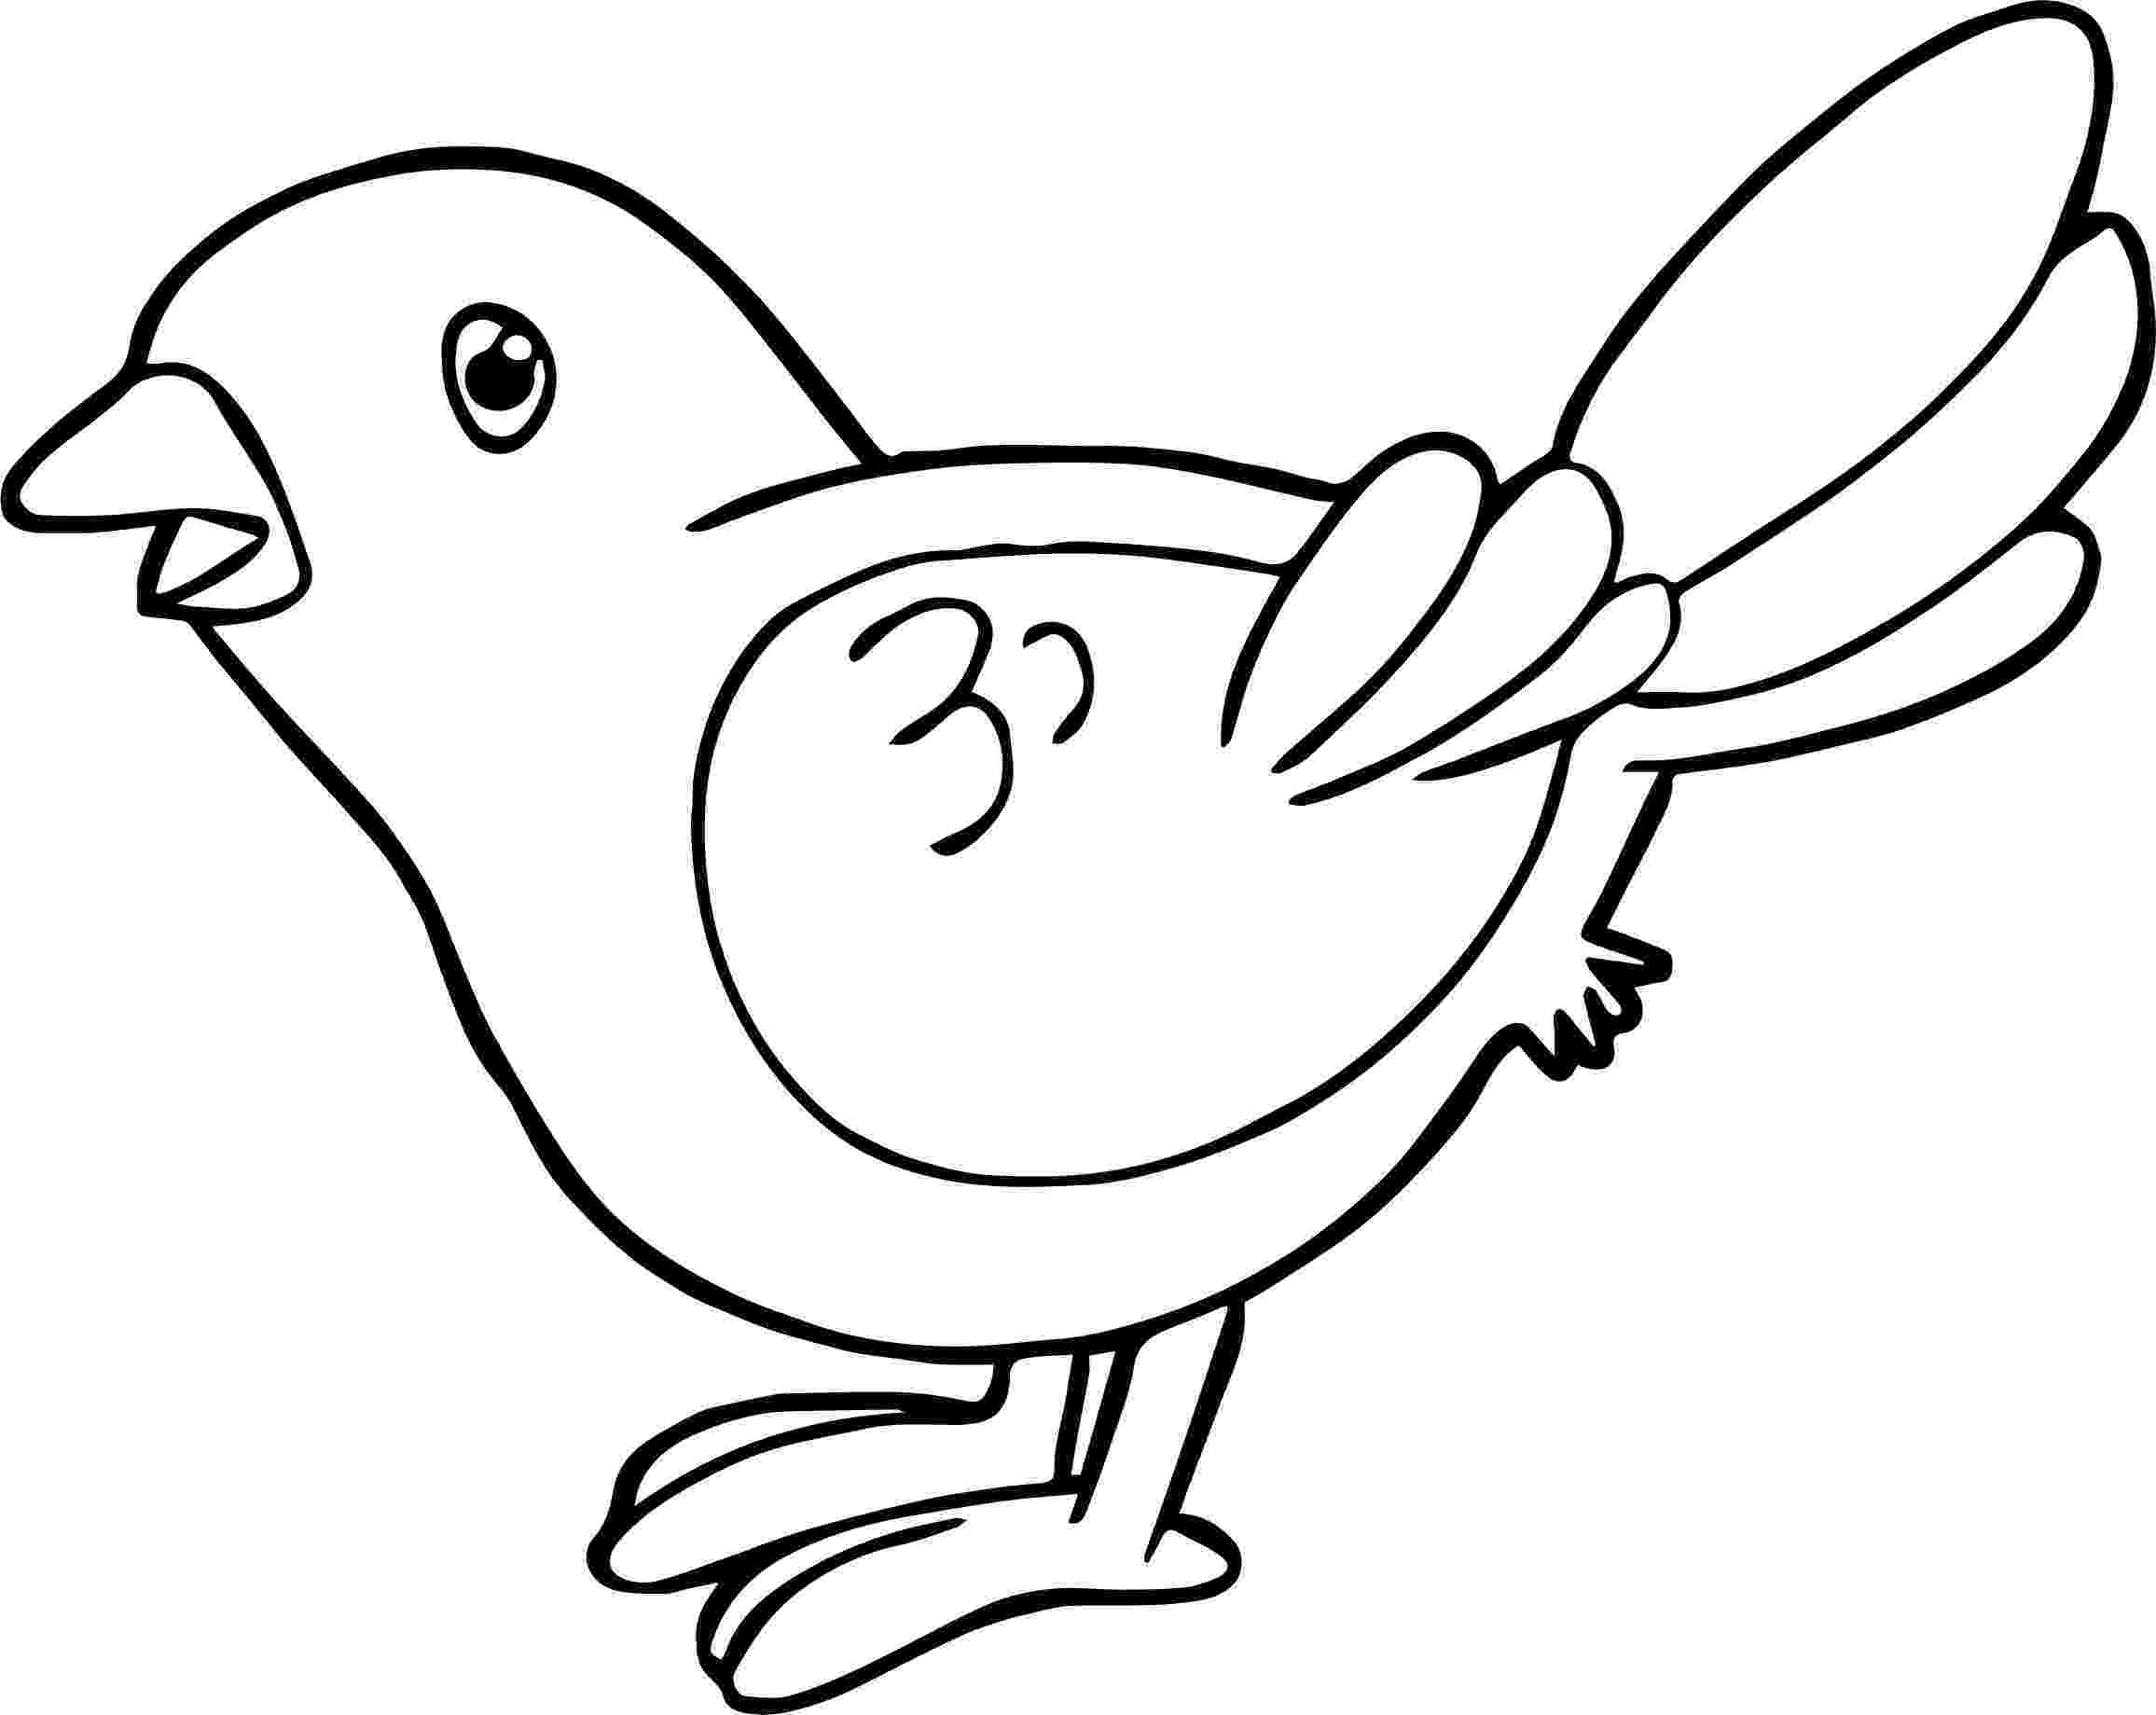 colouring picture bird blue jay printable coloring page for kids and adults picture colouring bird